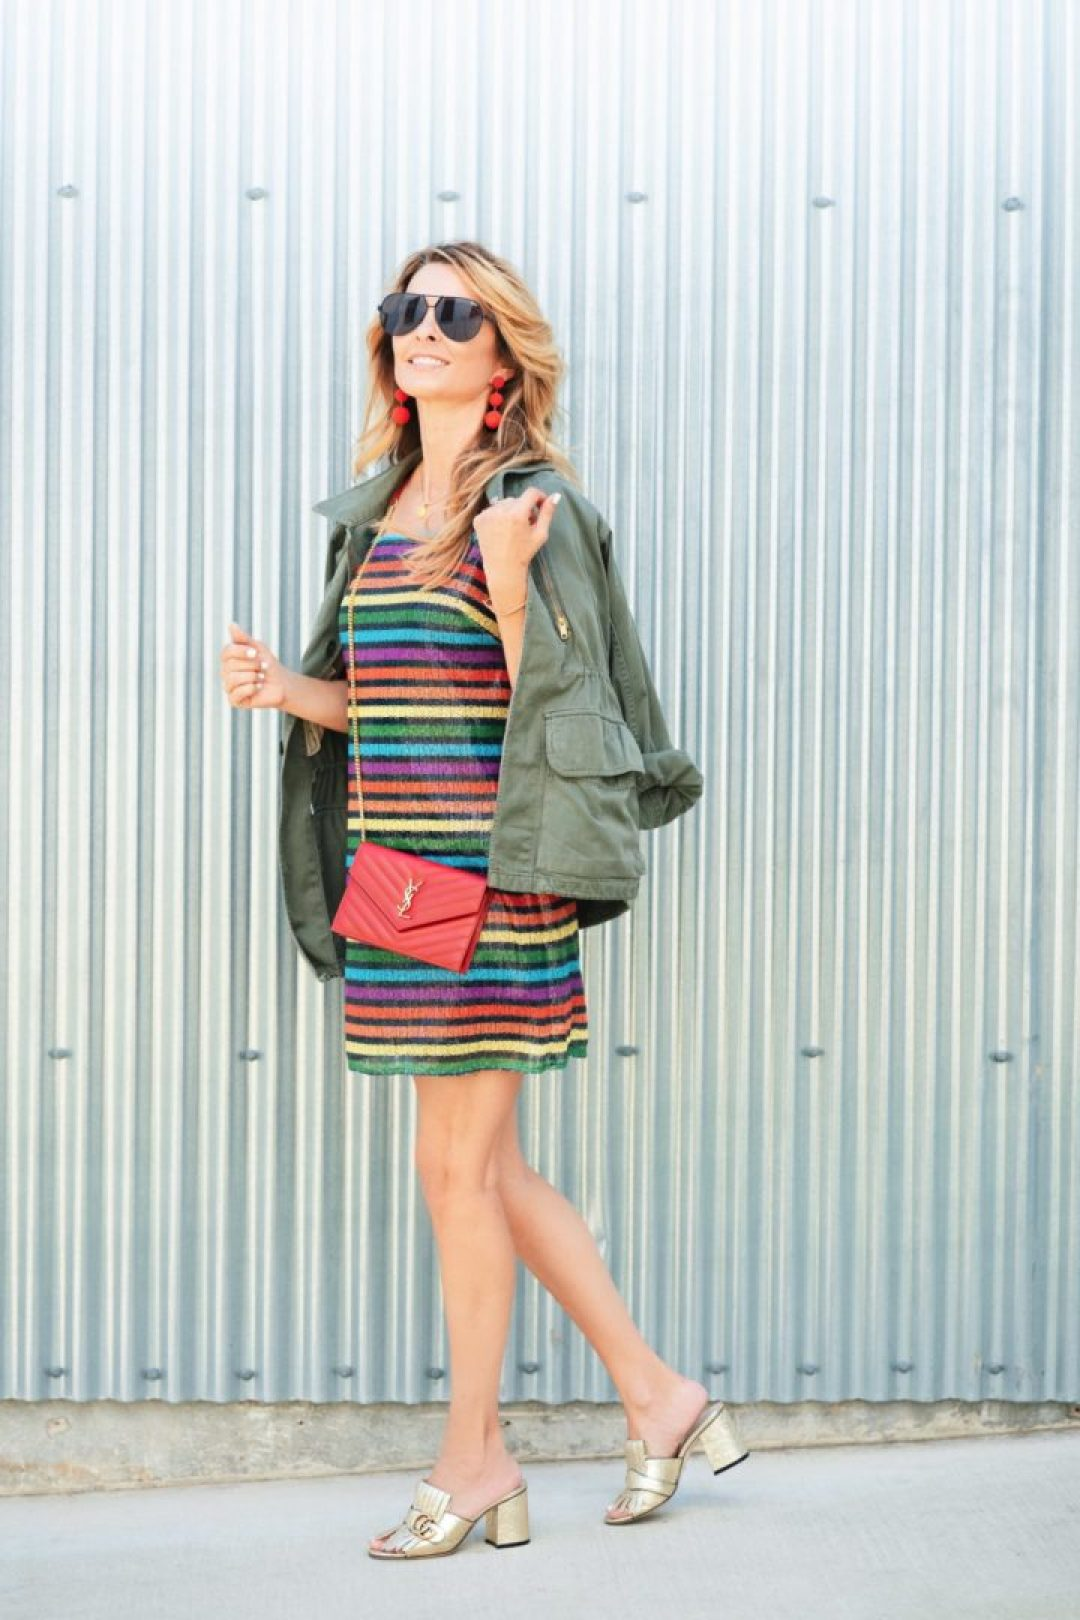 How To Style Rainbow Print Fashion Tips